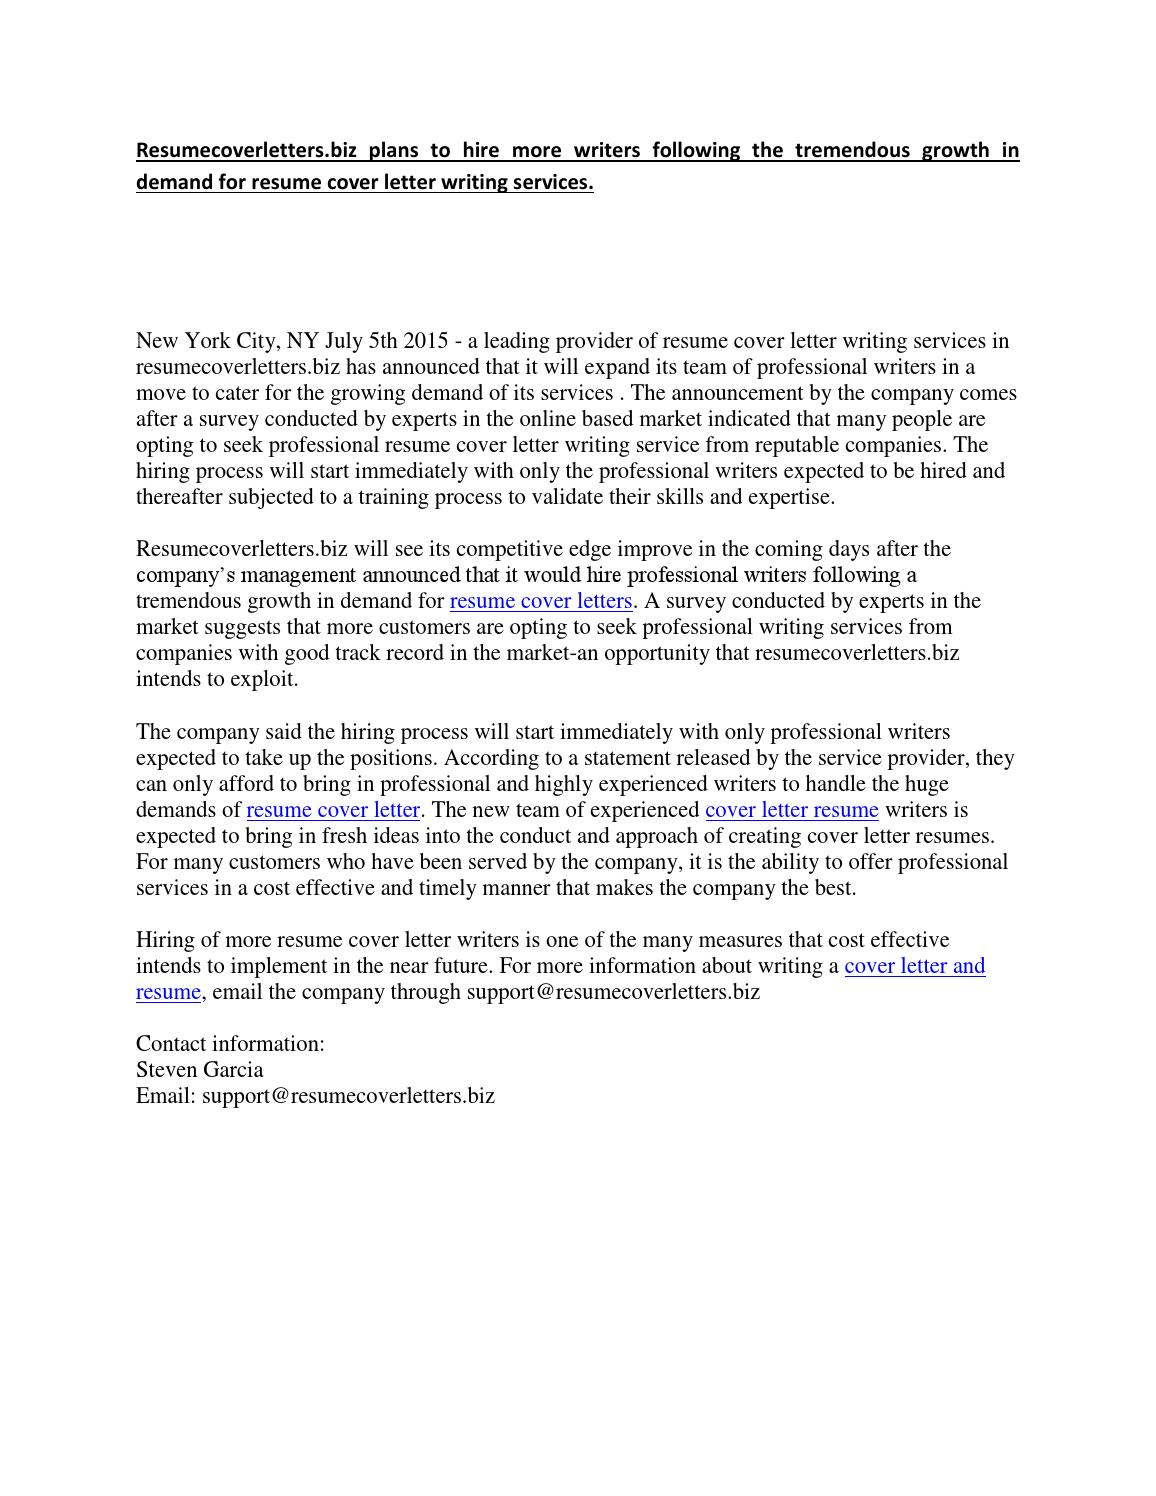 Resumecoverletters.biz plans to hire more writers following ...